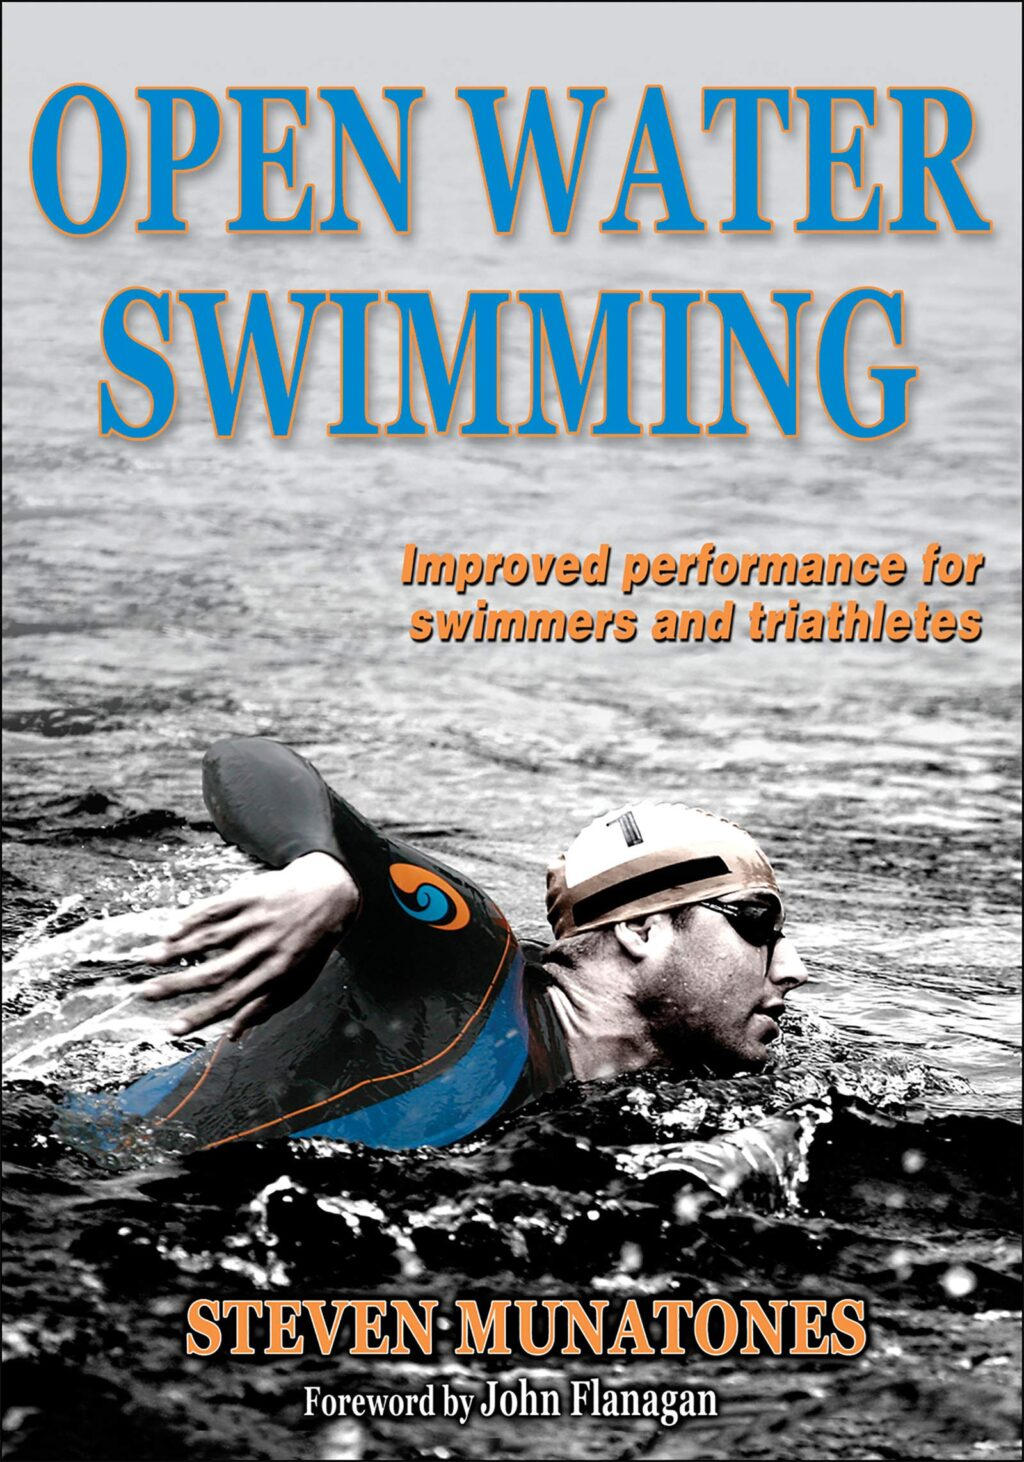 open-water-swimming-improved-performance-for-swimmers-and-triathletes